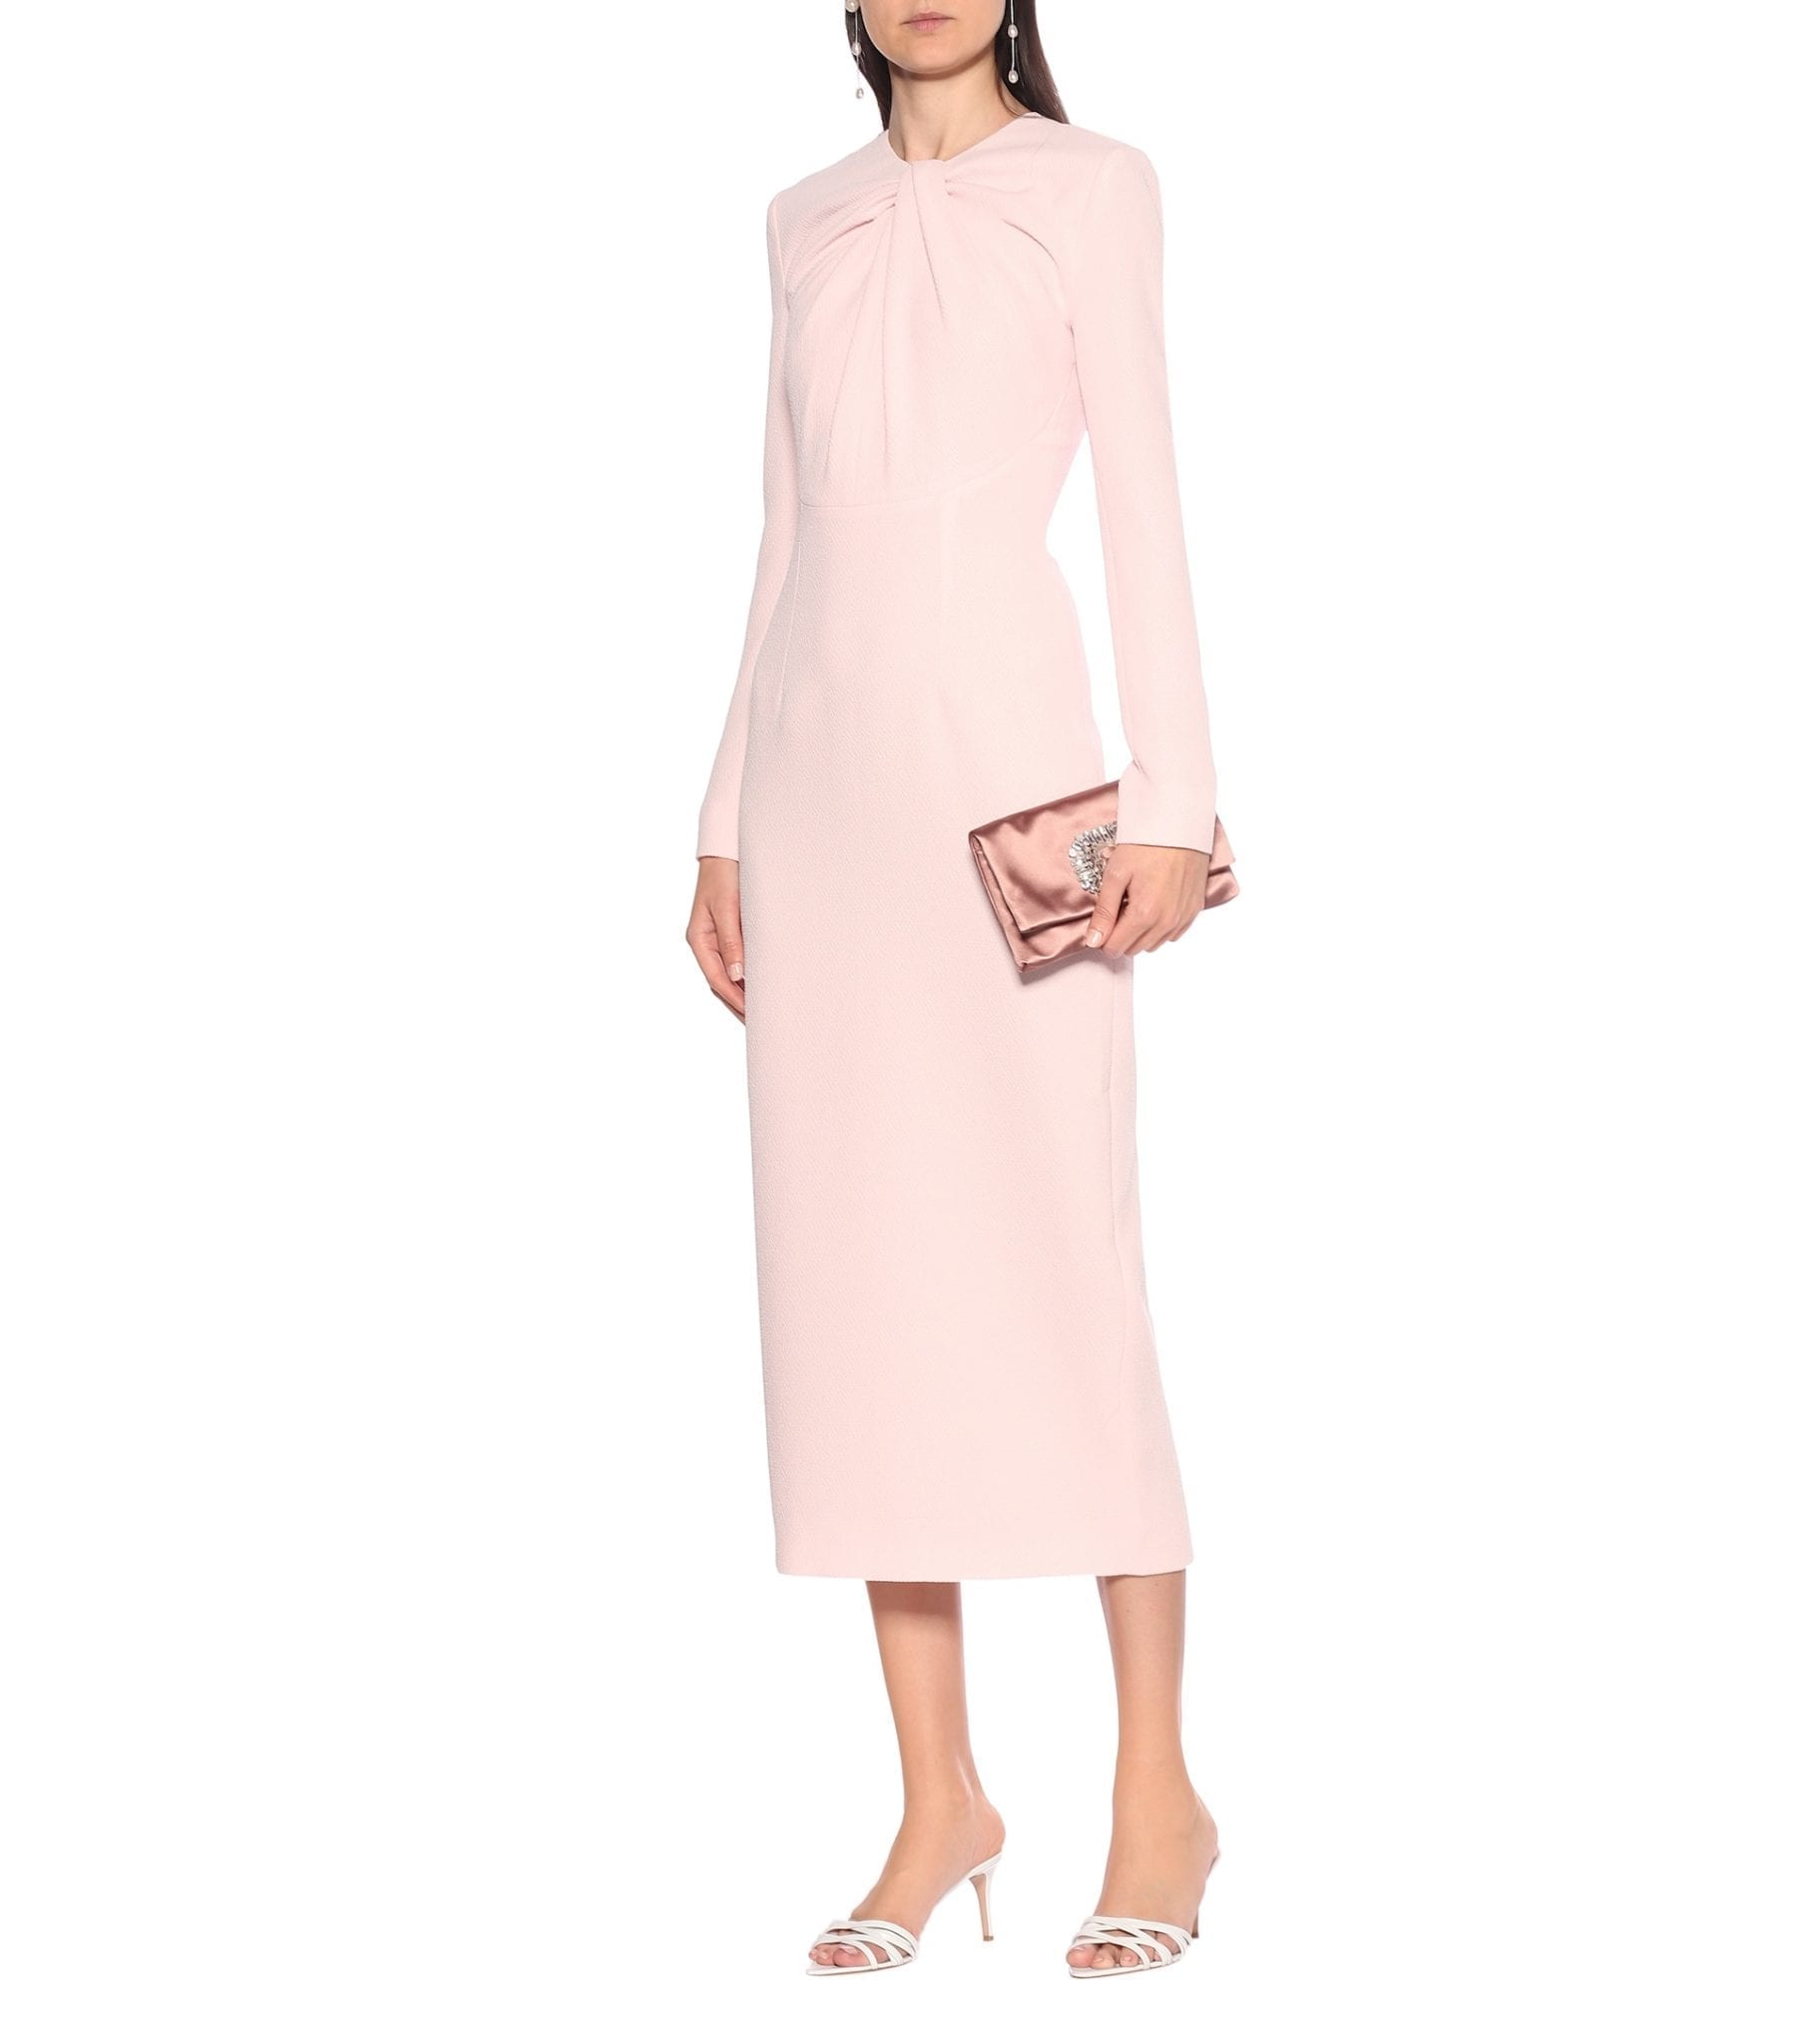 EMILIA WICKSTEAD Exclusive To Mytheresa – Remy Midi Dress